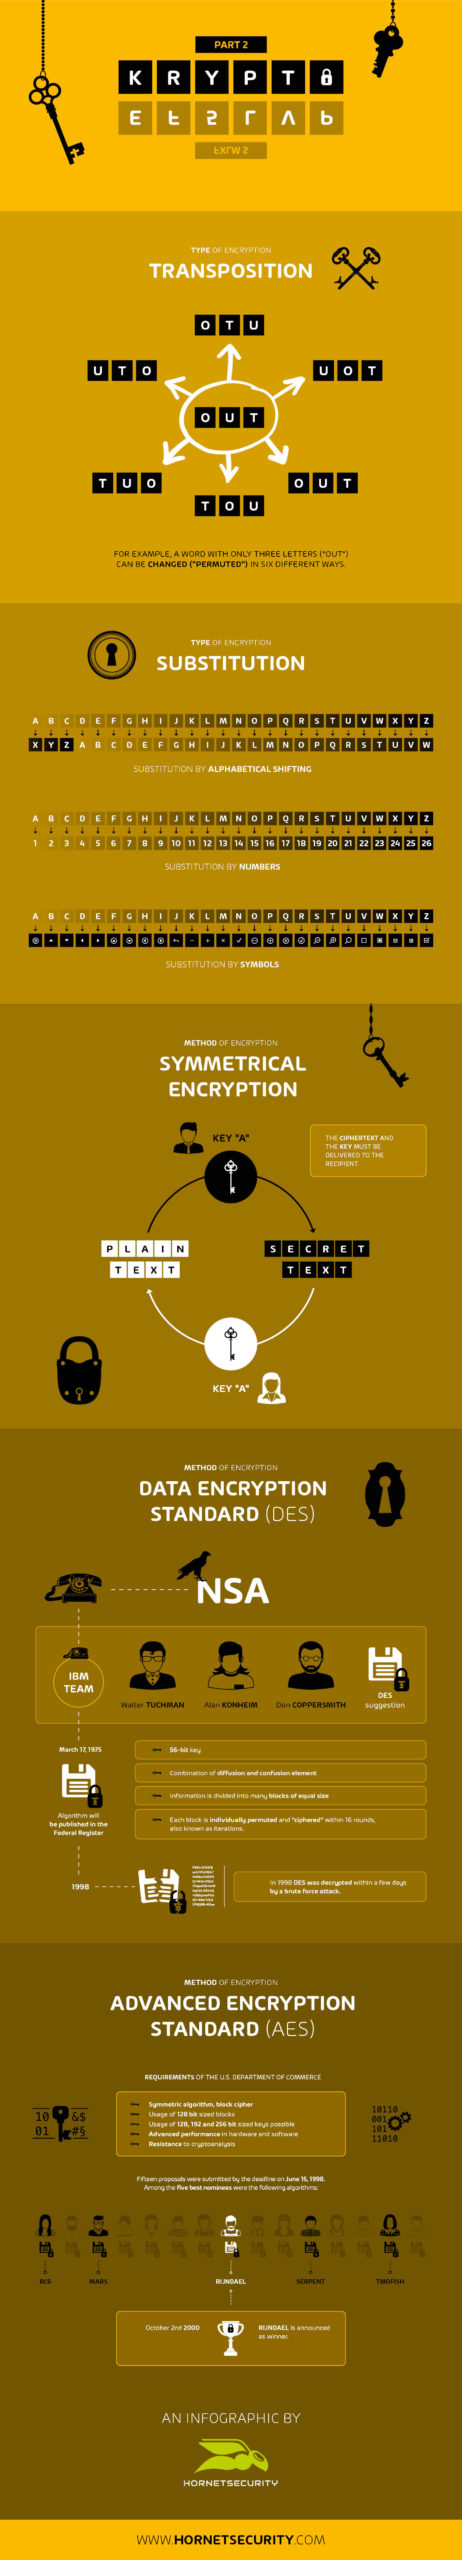 document-infographic-cryptography-part2-en